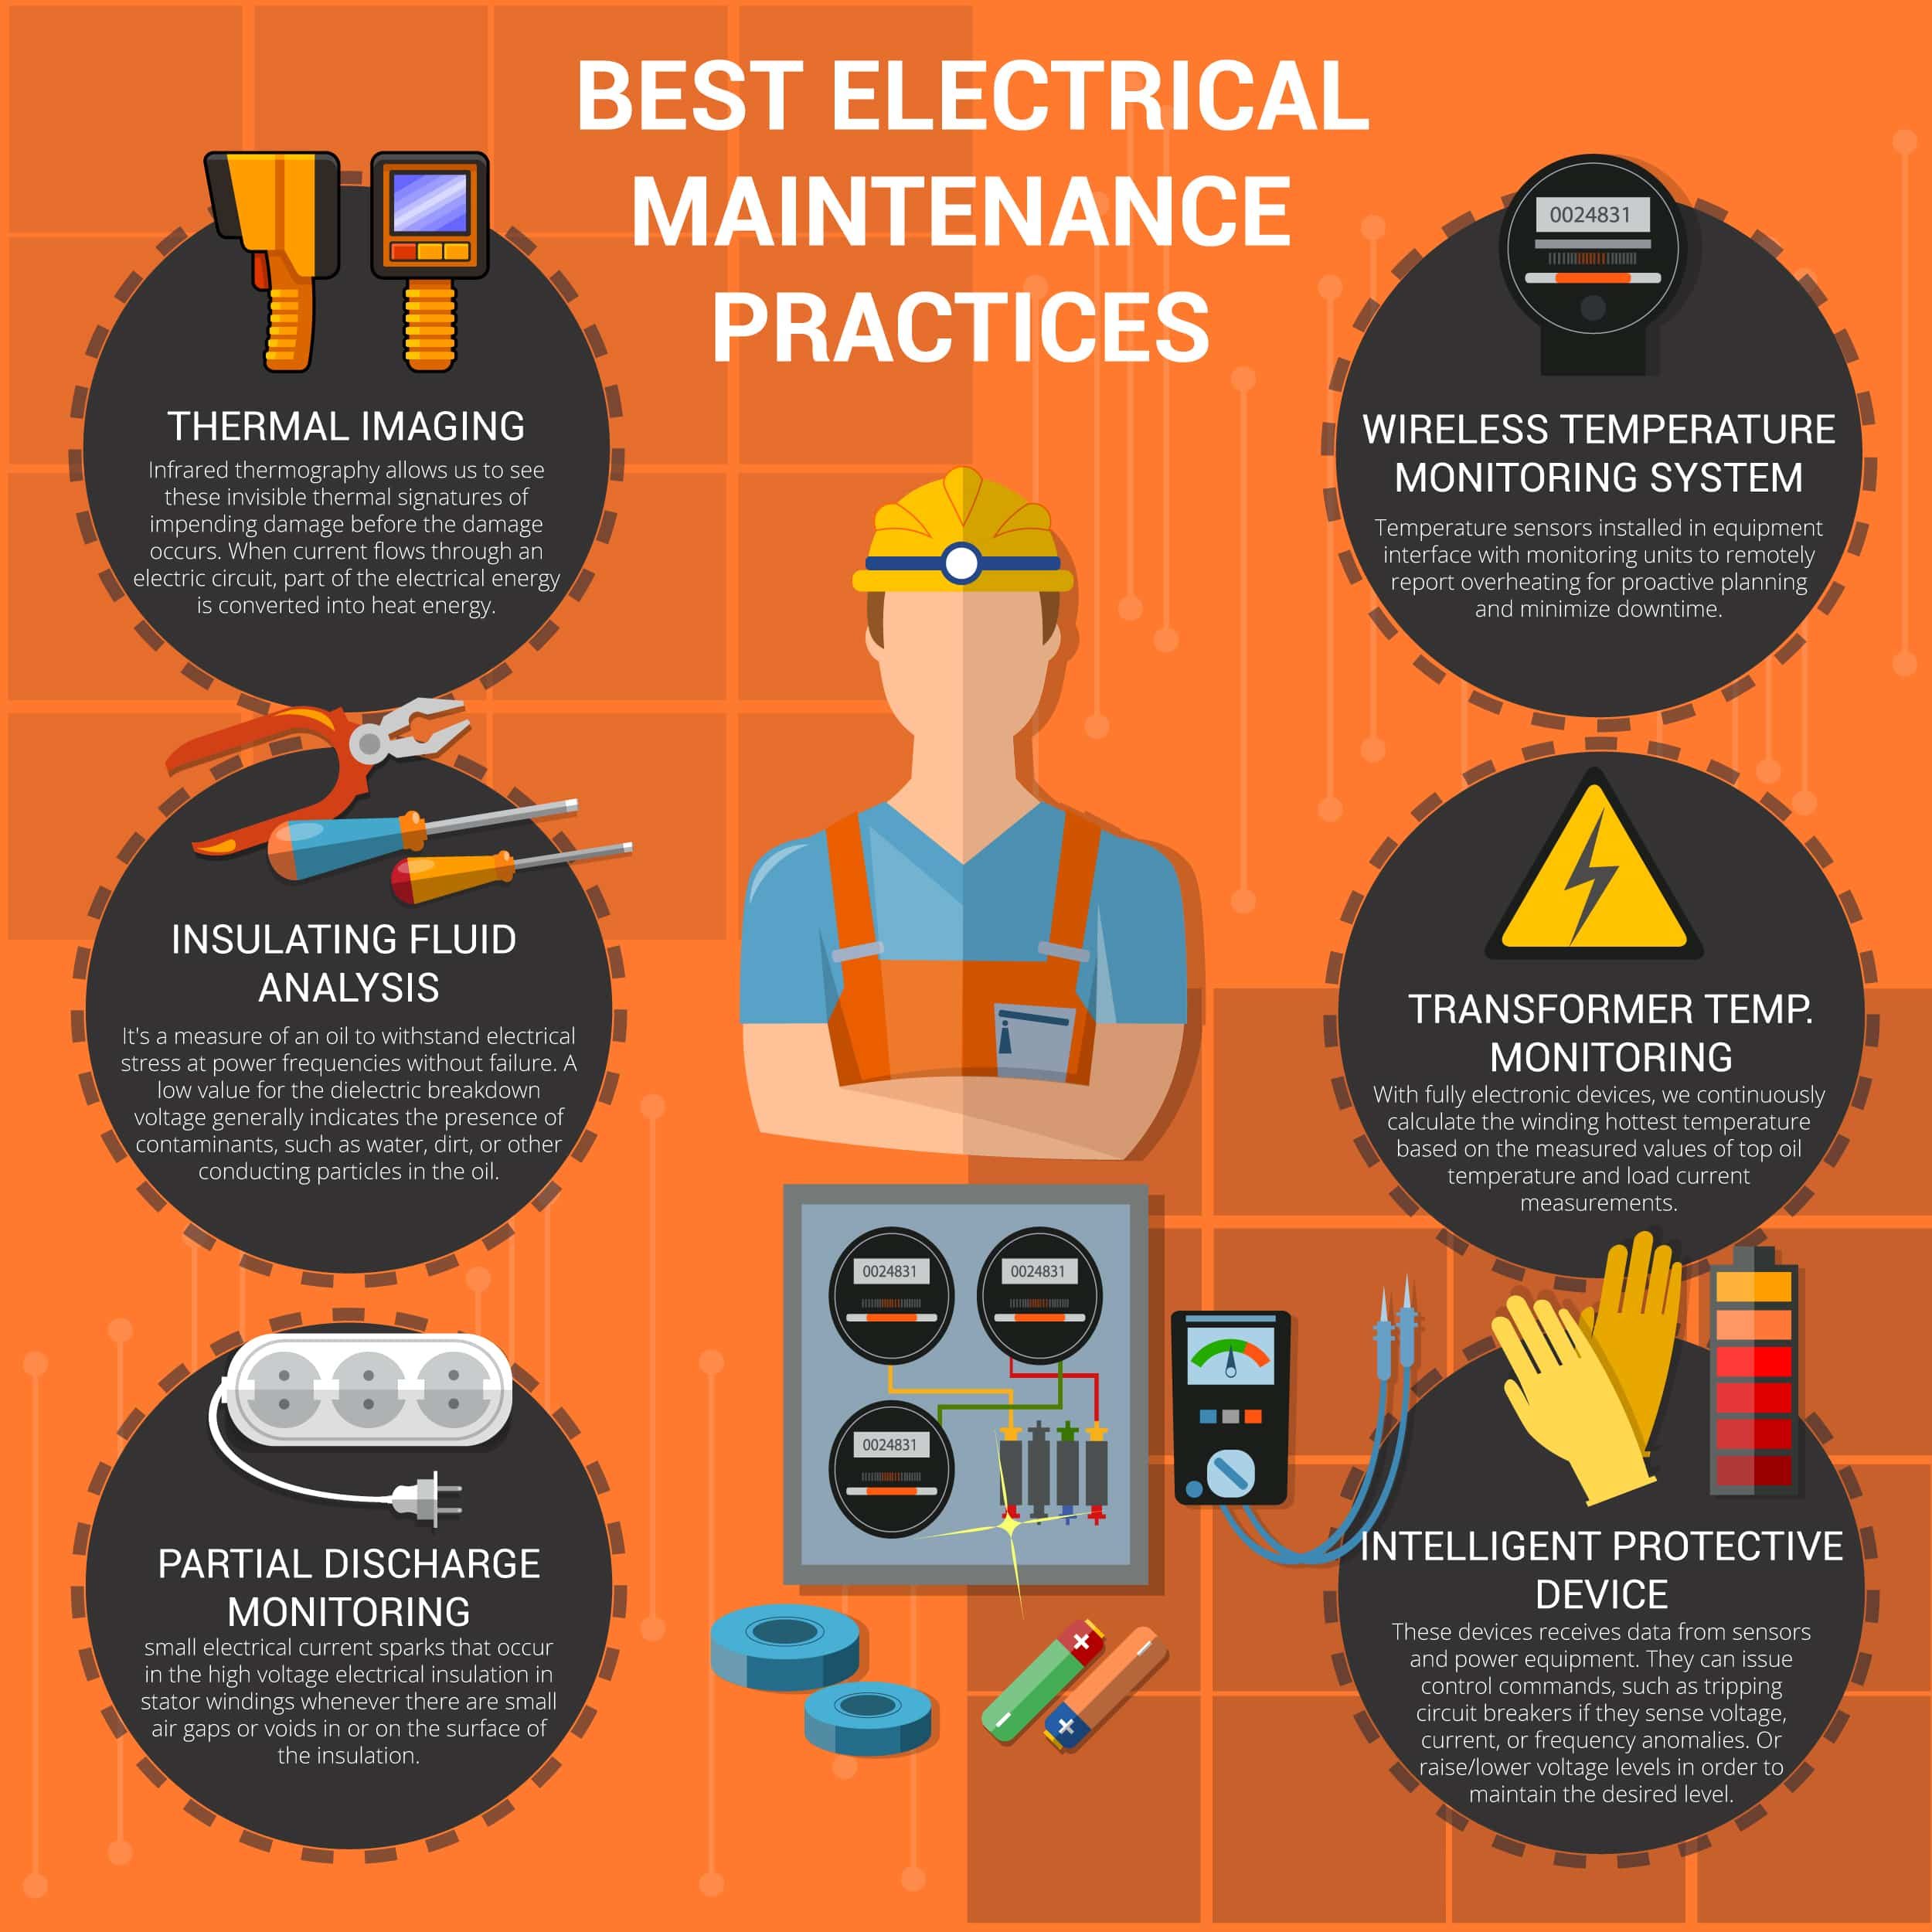 Best Electrical Maintenance Practices